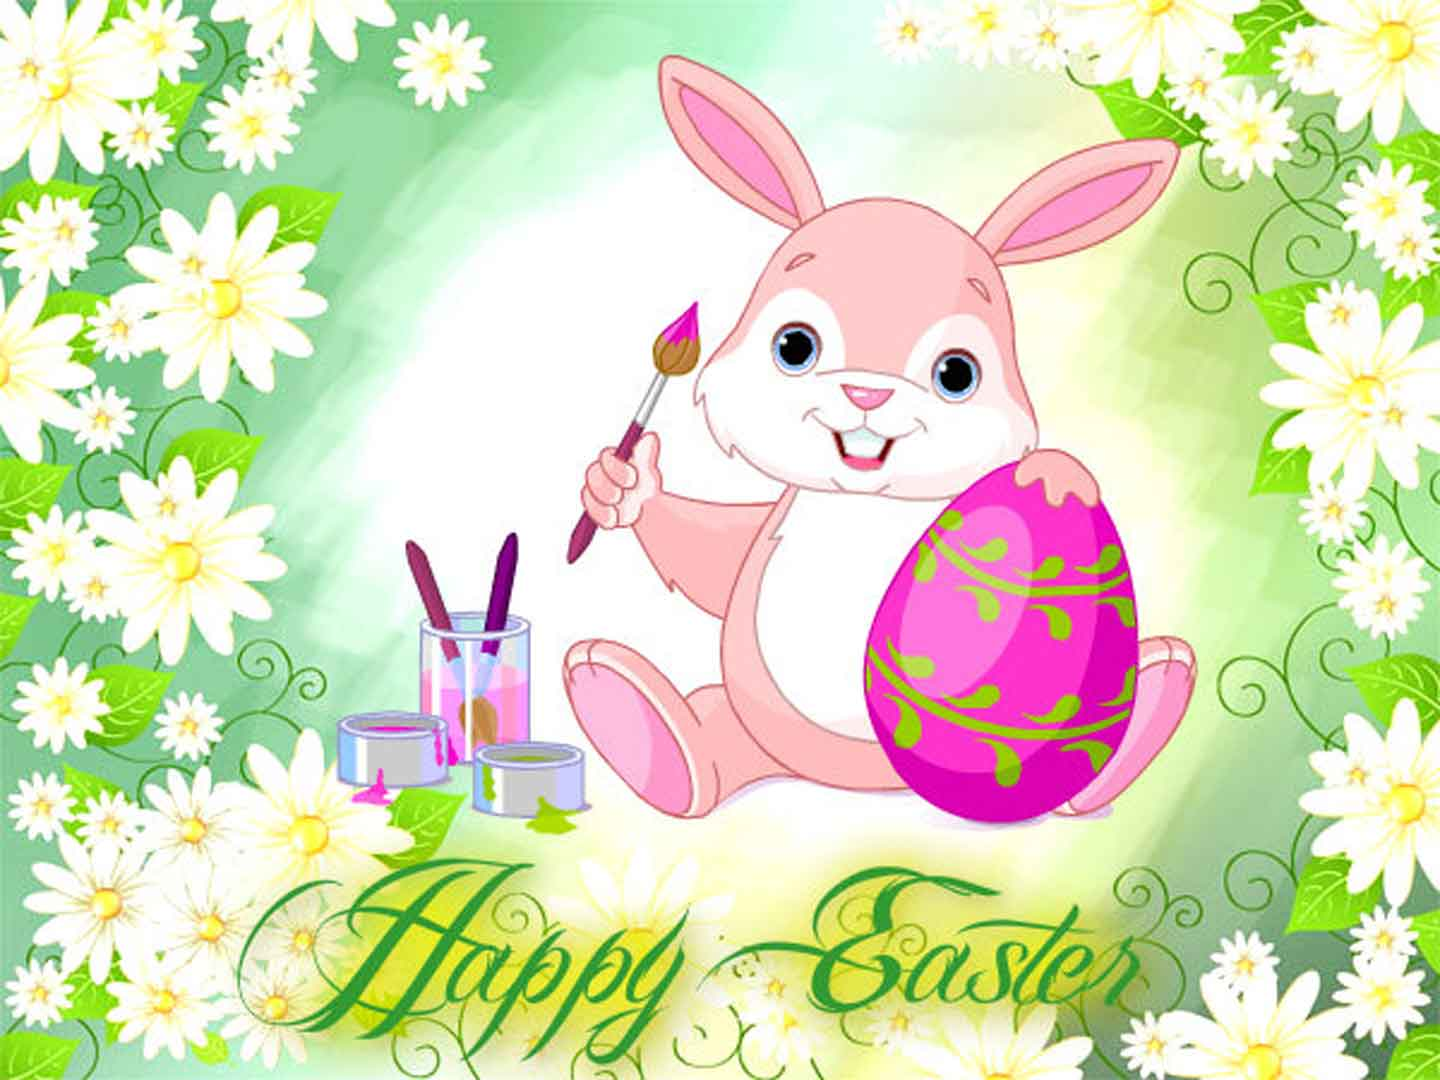 Happy Easter Cute Bunny Wallpapers Wallpapers HD, Wallpaper, Happy